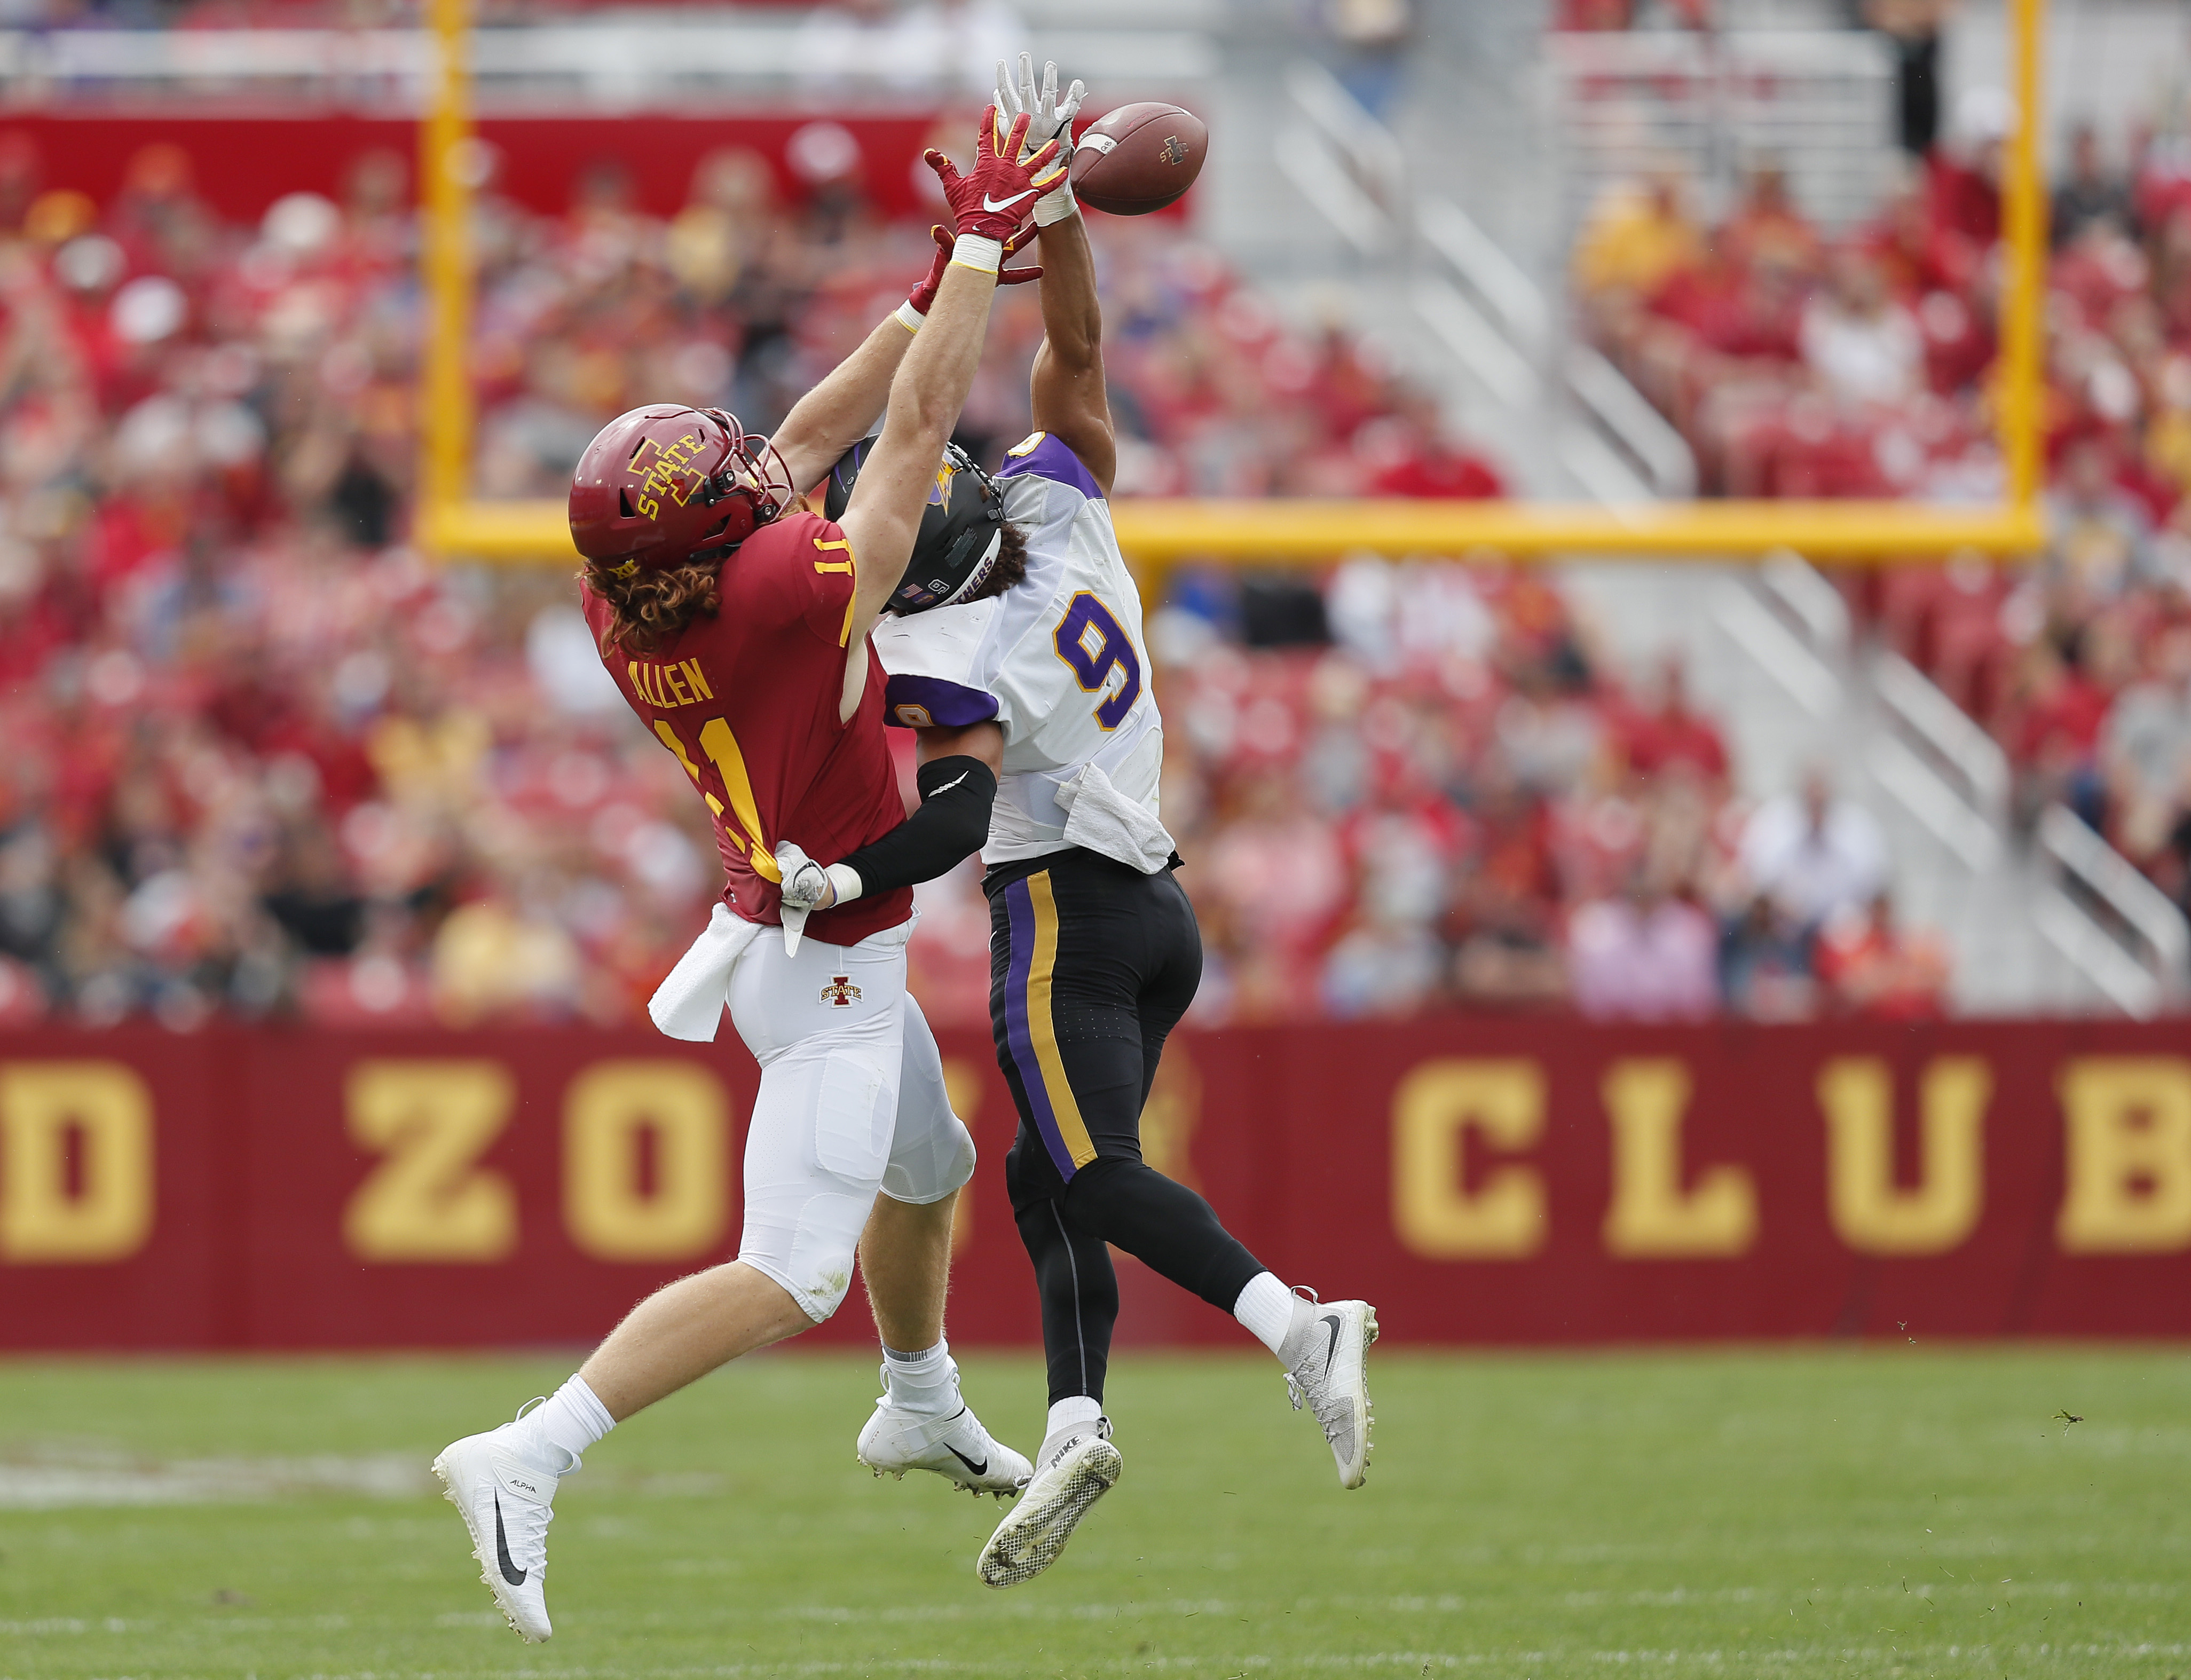 No. 21 Iowa State survives Northern Iowa in 3 OT, 29-26